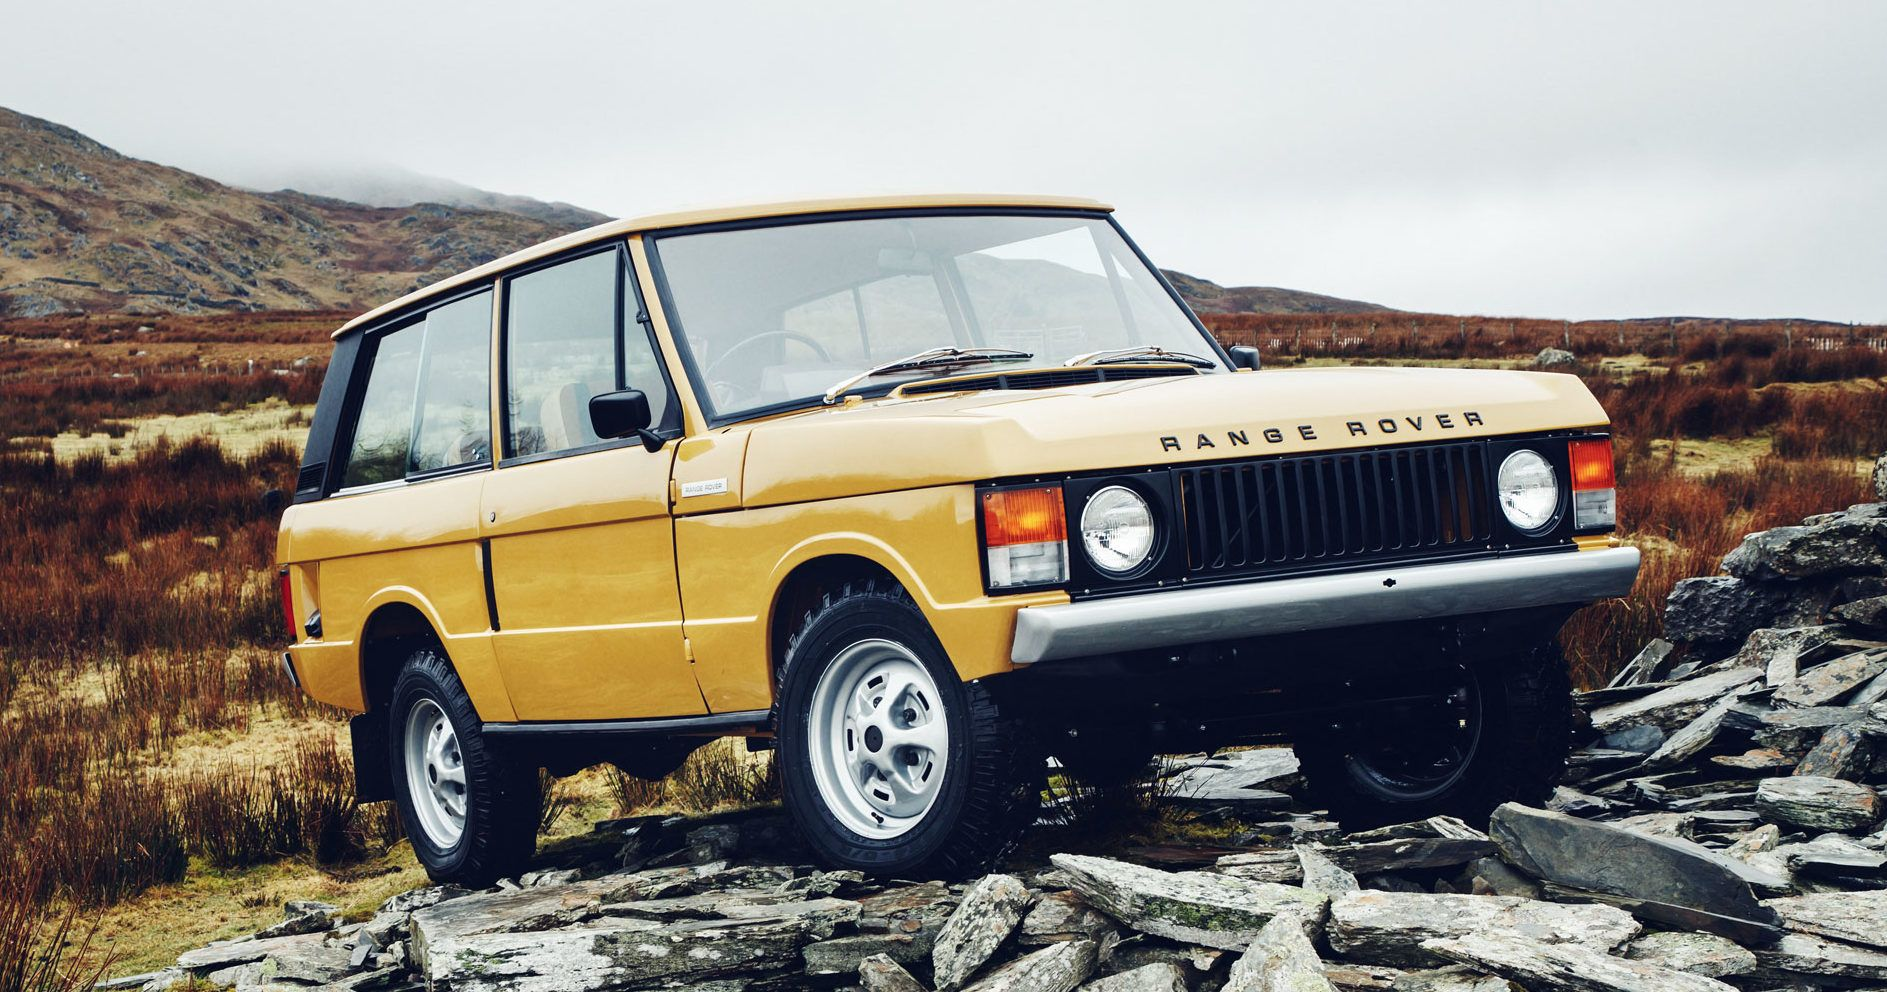 For Just 170k Relive The Past In A Painstakingly Restored 1970s Range Rover Range Rover Classic Range Rover Classic Car Restoration